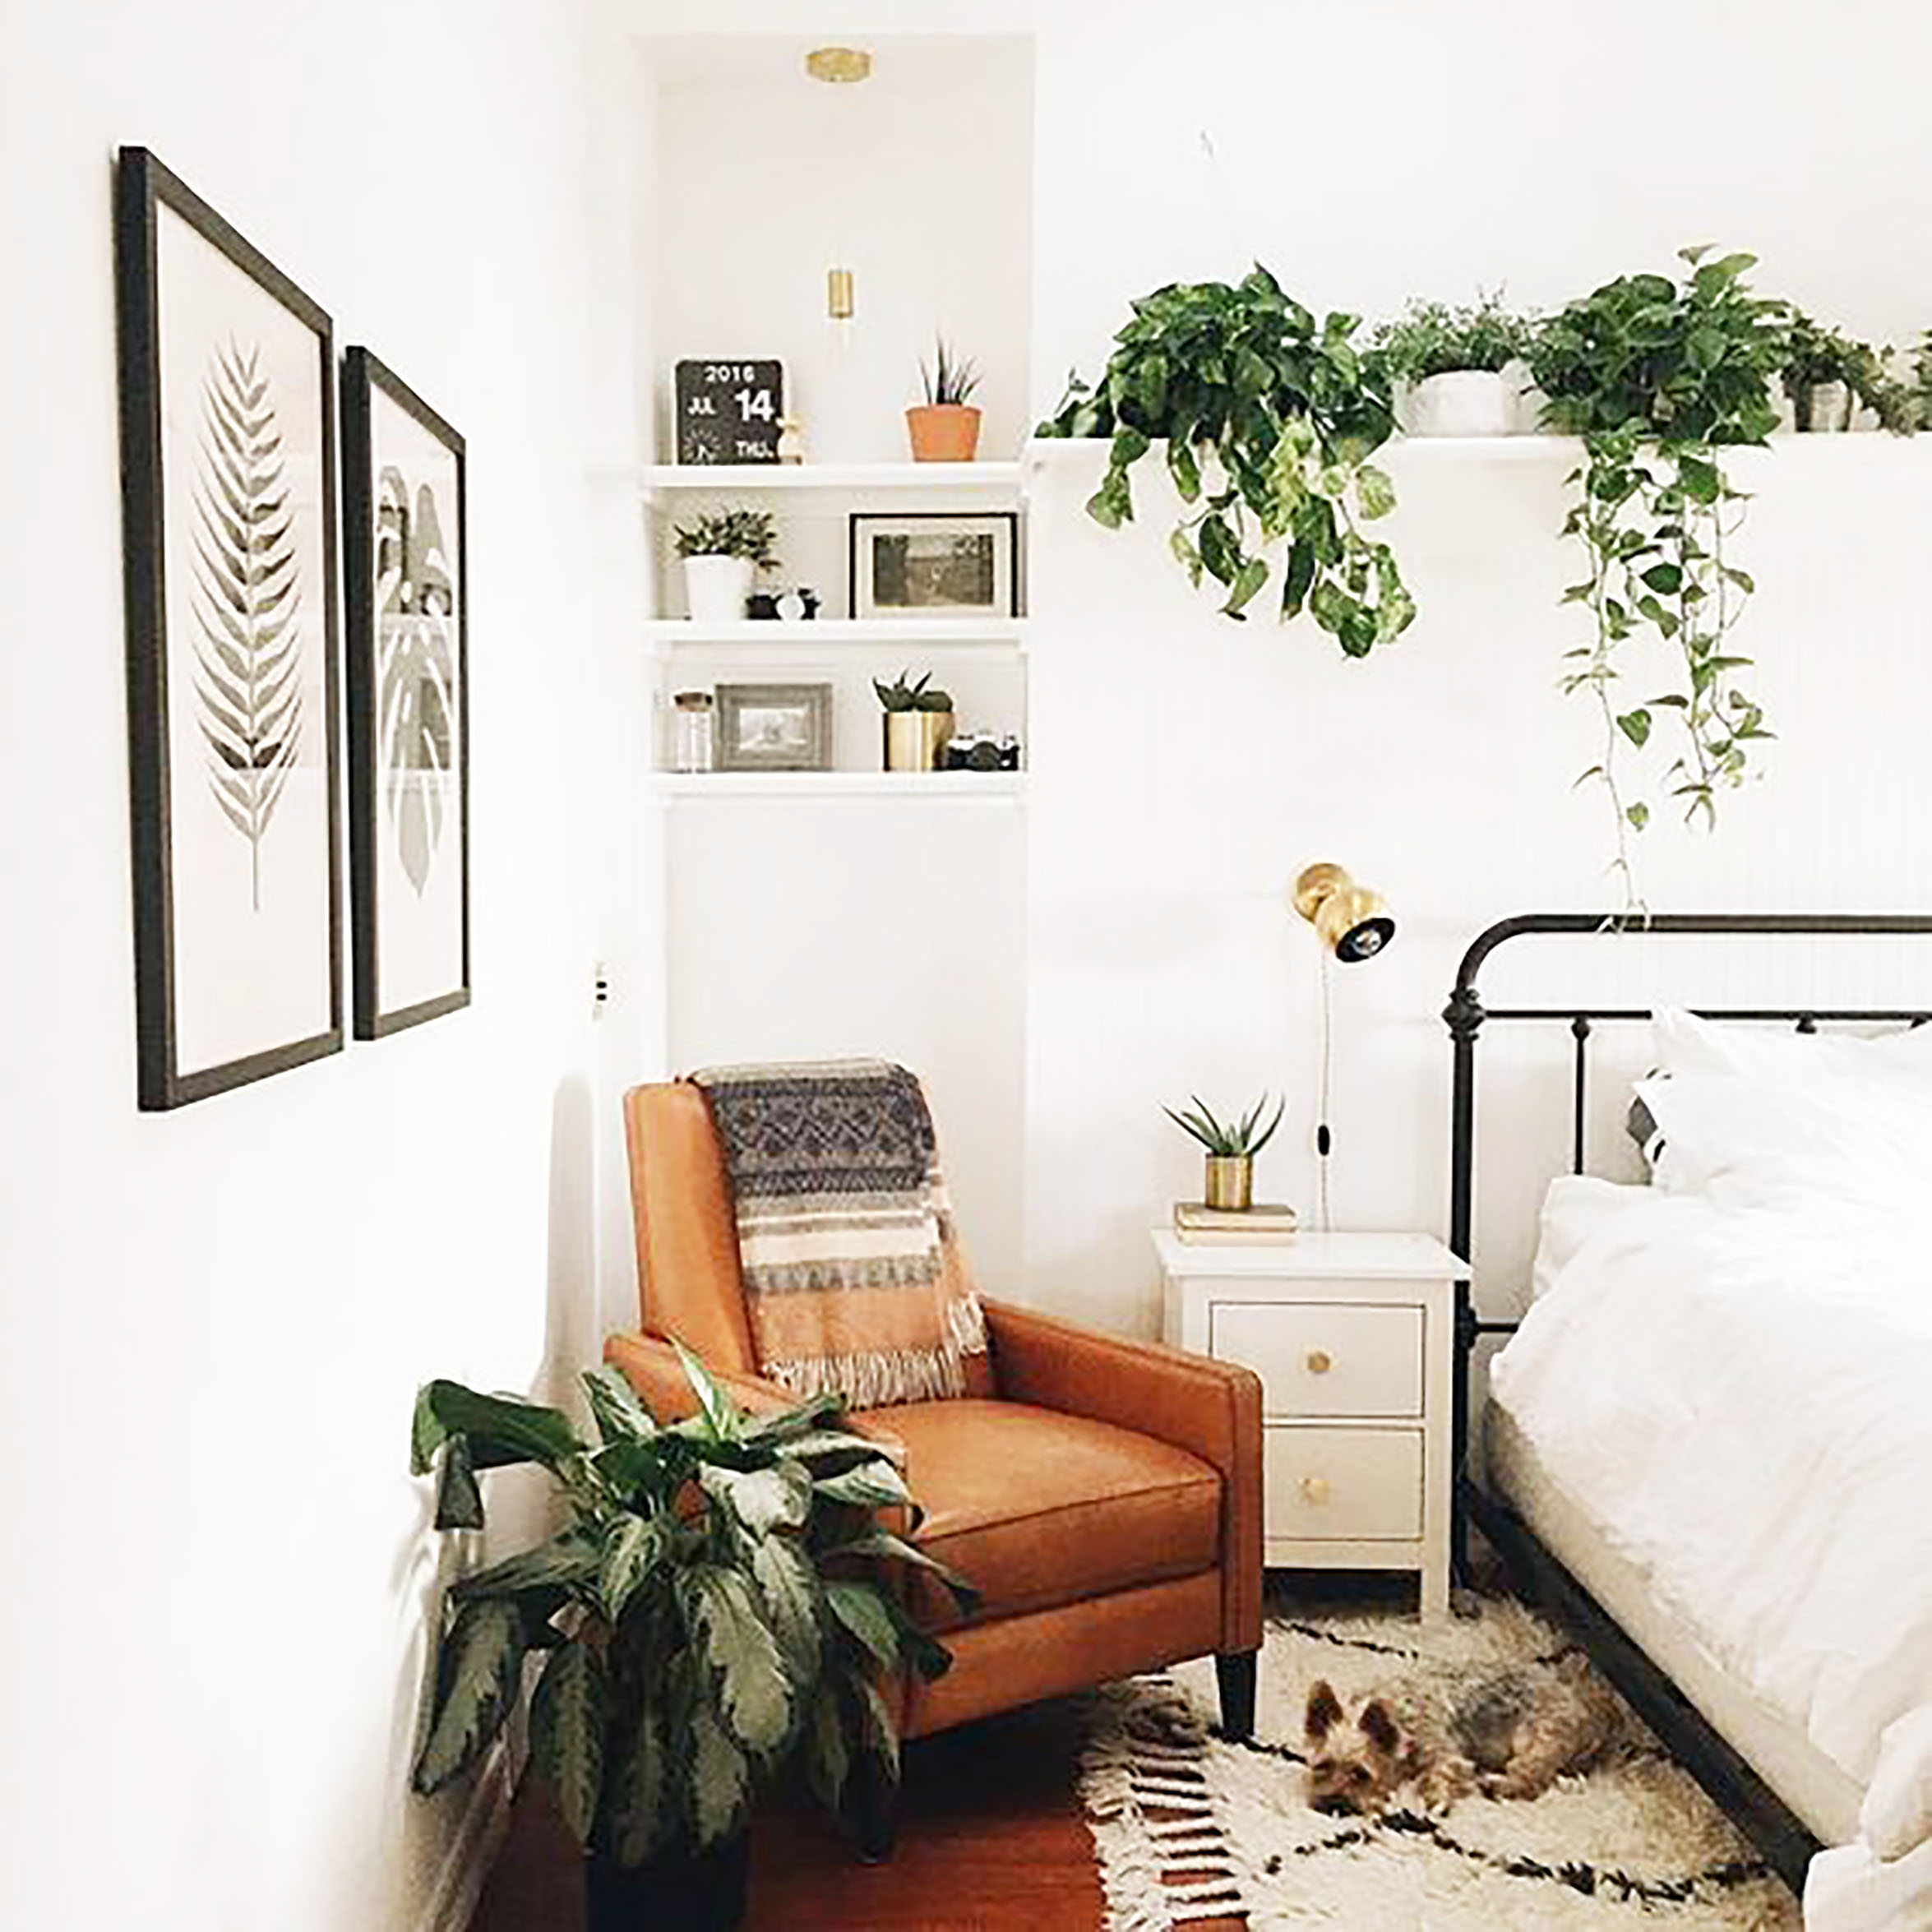 Plants-interior-design-bedroom-cococozy-instagram